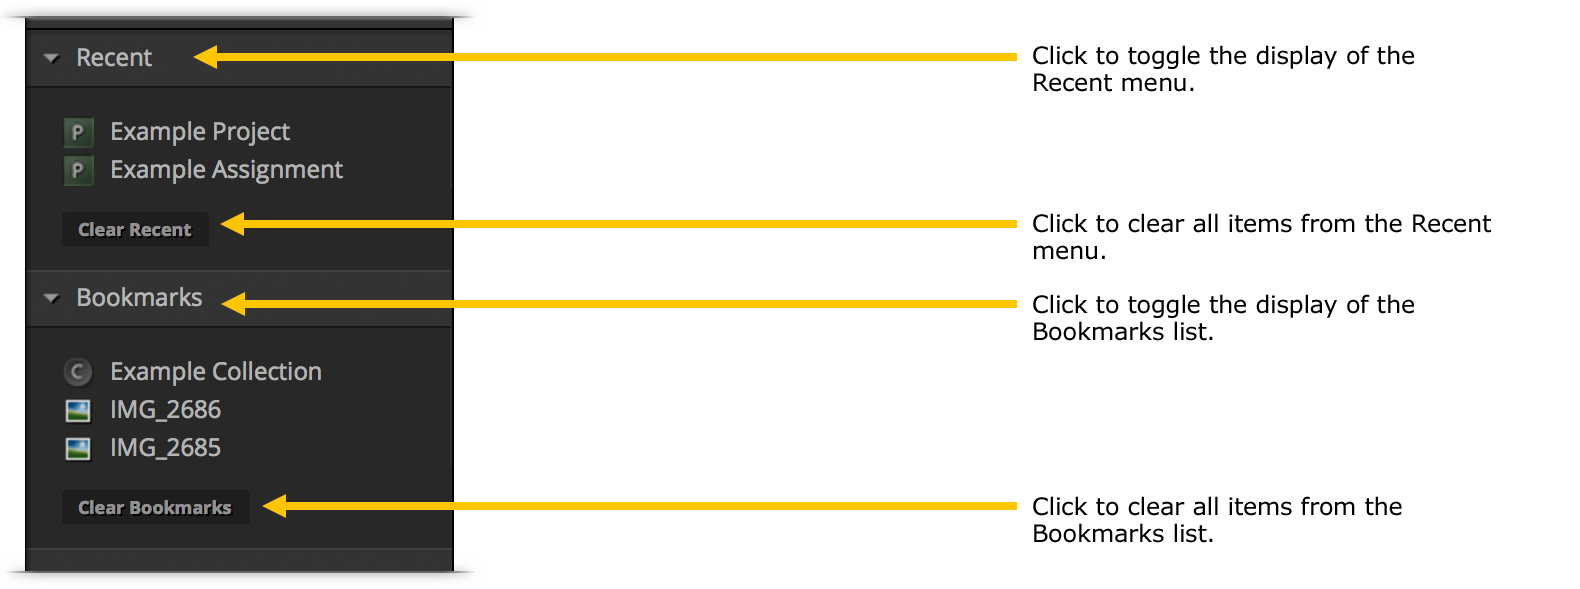 ndfsi-recent-bookmarks-ps.png